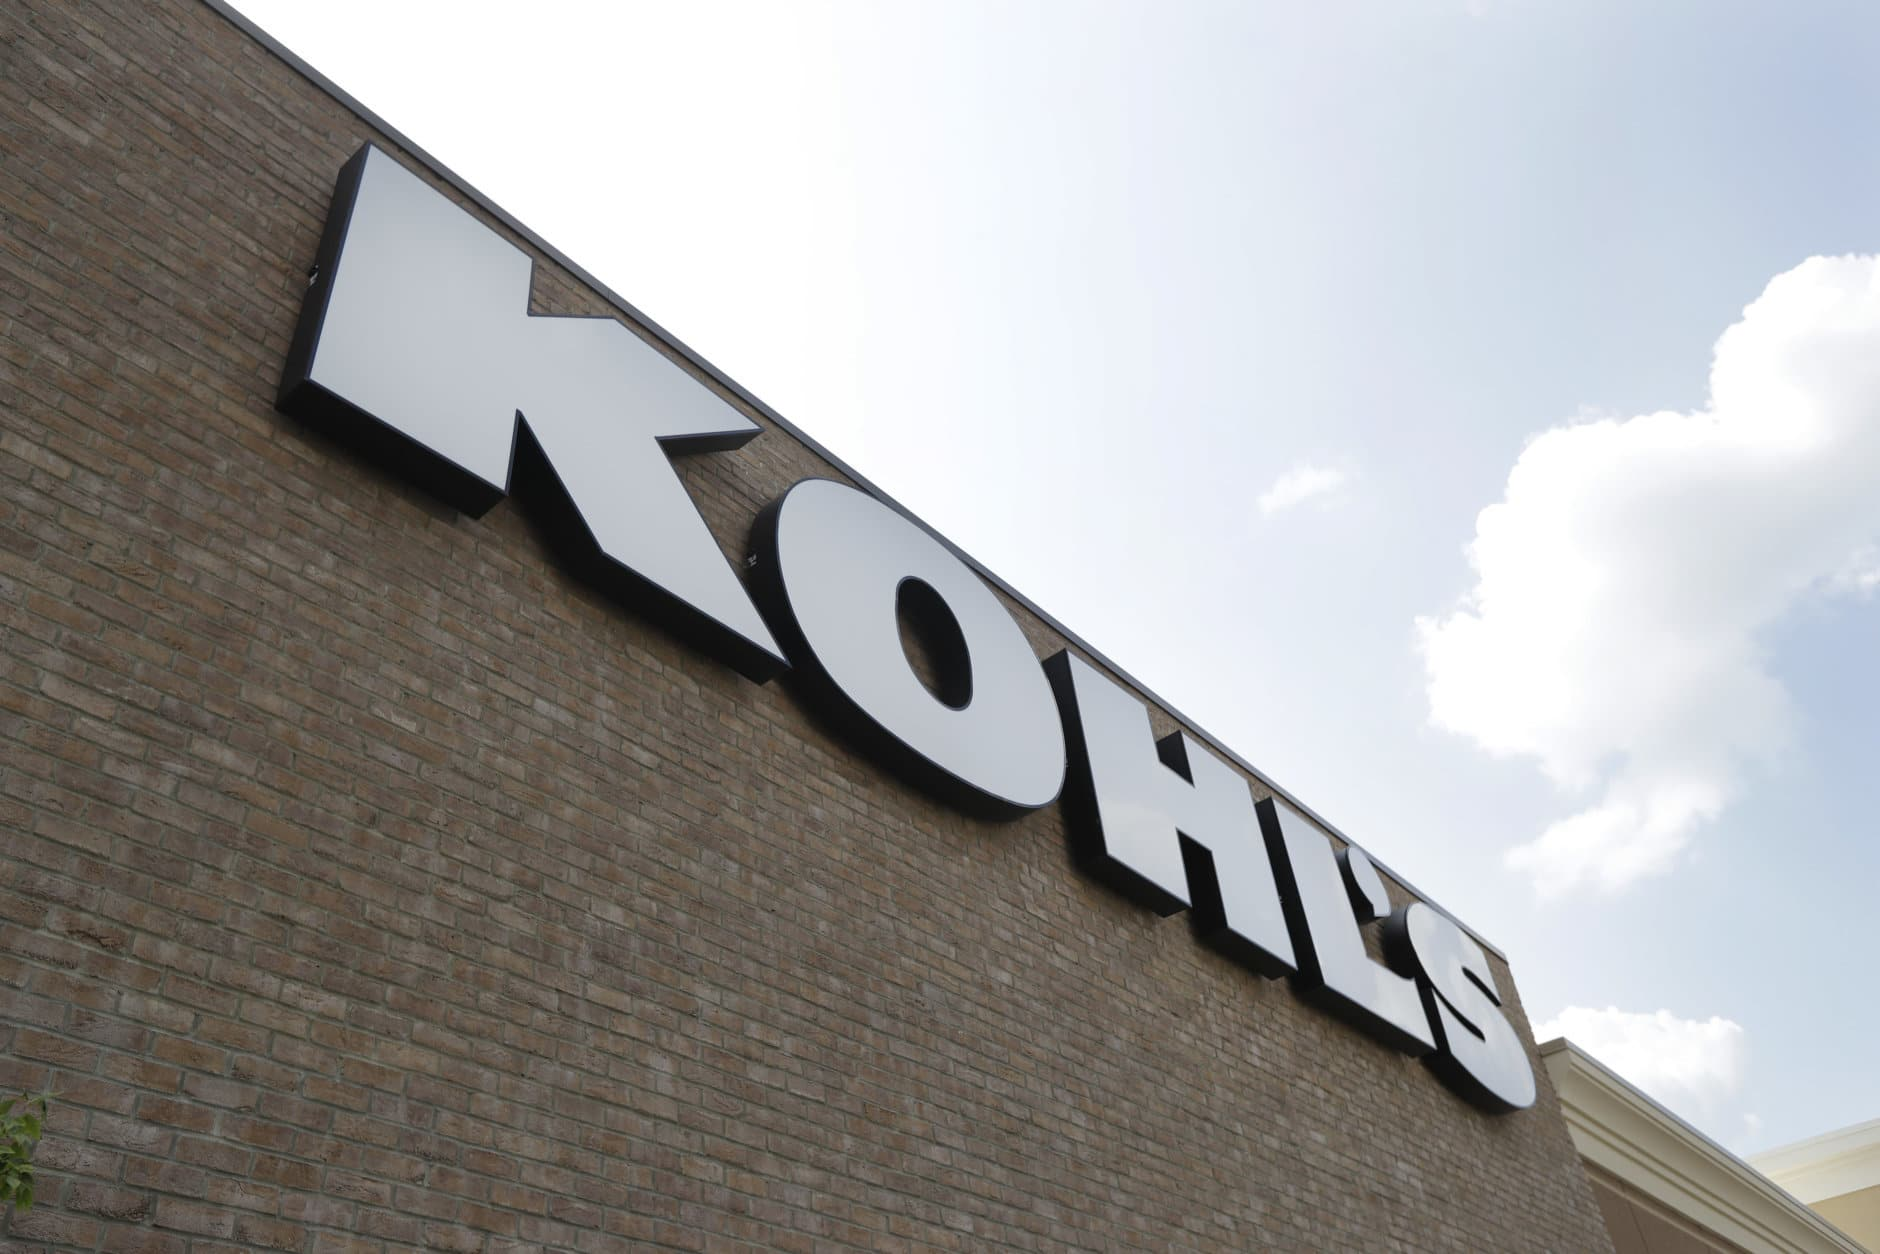 FILE - In this  Aug. 28, 2018, fie photo, a Kohl's sign is shown in front of a Kohl's store in Concord, N.C. Kohl's has mapped out where retailers like Bon-Ton and Sears shuttered stores so it can target those customers with specific ads. Kohl's believes one-third of its stores is benefiting from department store closings. (AP Photo/Chuck Burton, File)